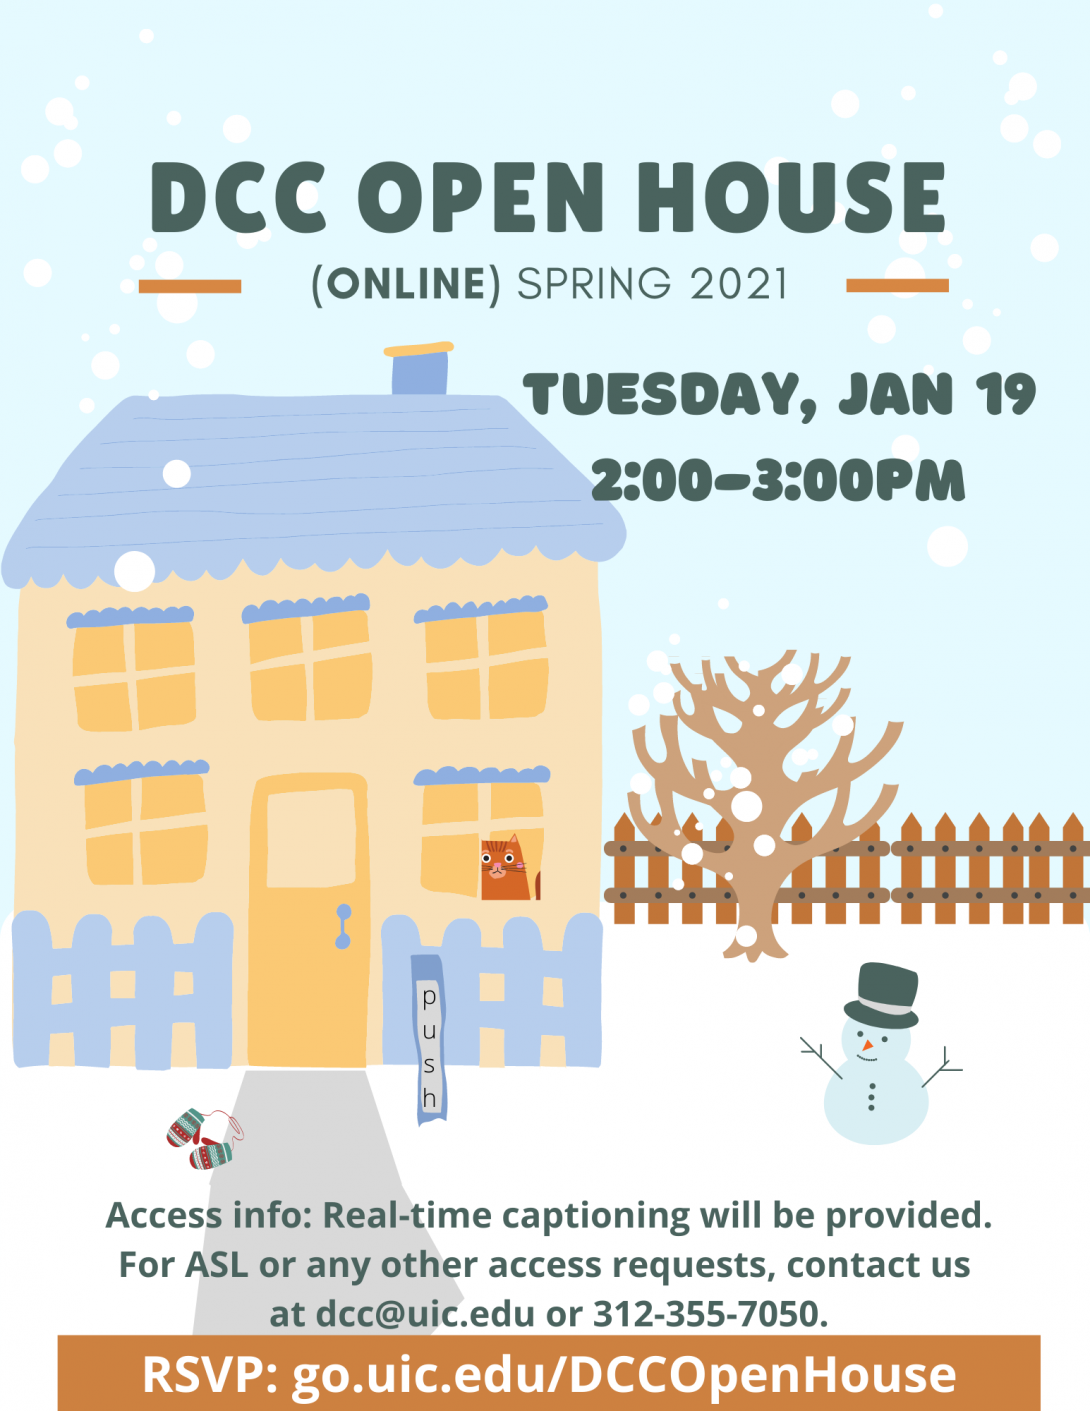 A yellow and blue two story house has a fence, a gold front door, and gold windows with blue awnings. A post with a vertical push button sits in front of the front door. On a snowy lawn, there is a snowman and a pair mittens. To the right of the house is a yard with a tree and a fence. DCC Open House: (Online) Spring 2021 is at the top in large gray letters, and there is a copper band at the bottom with white text that says